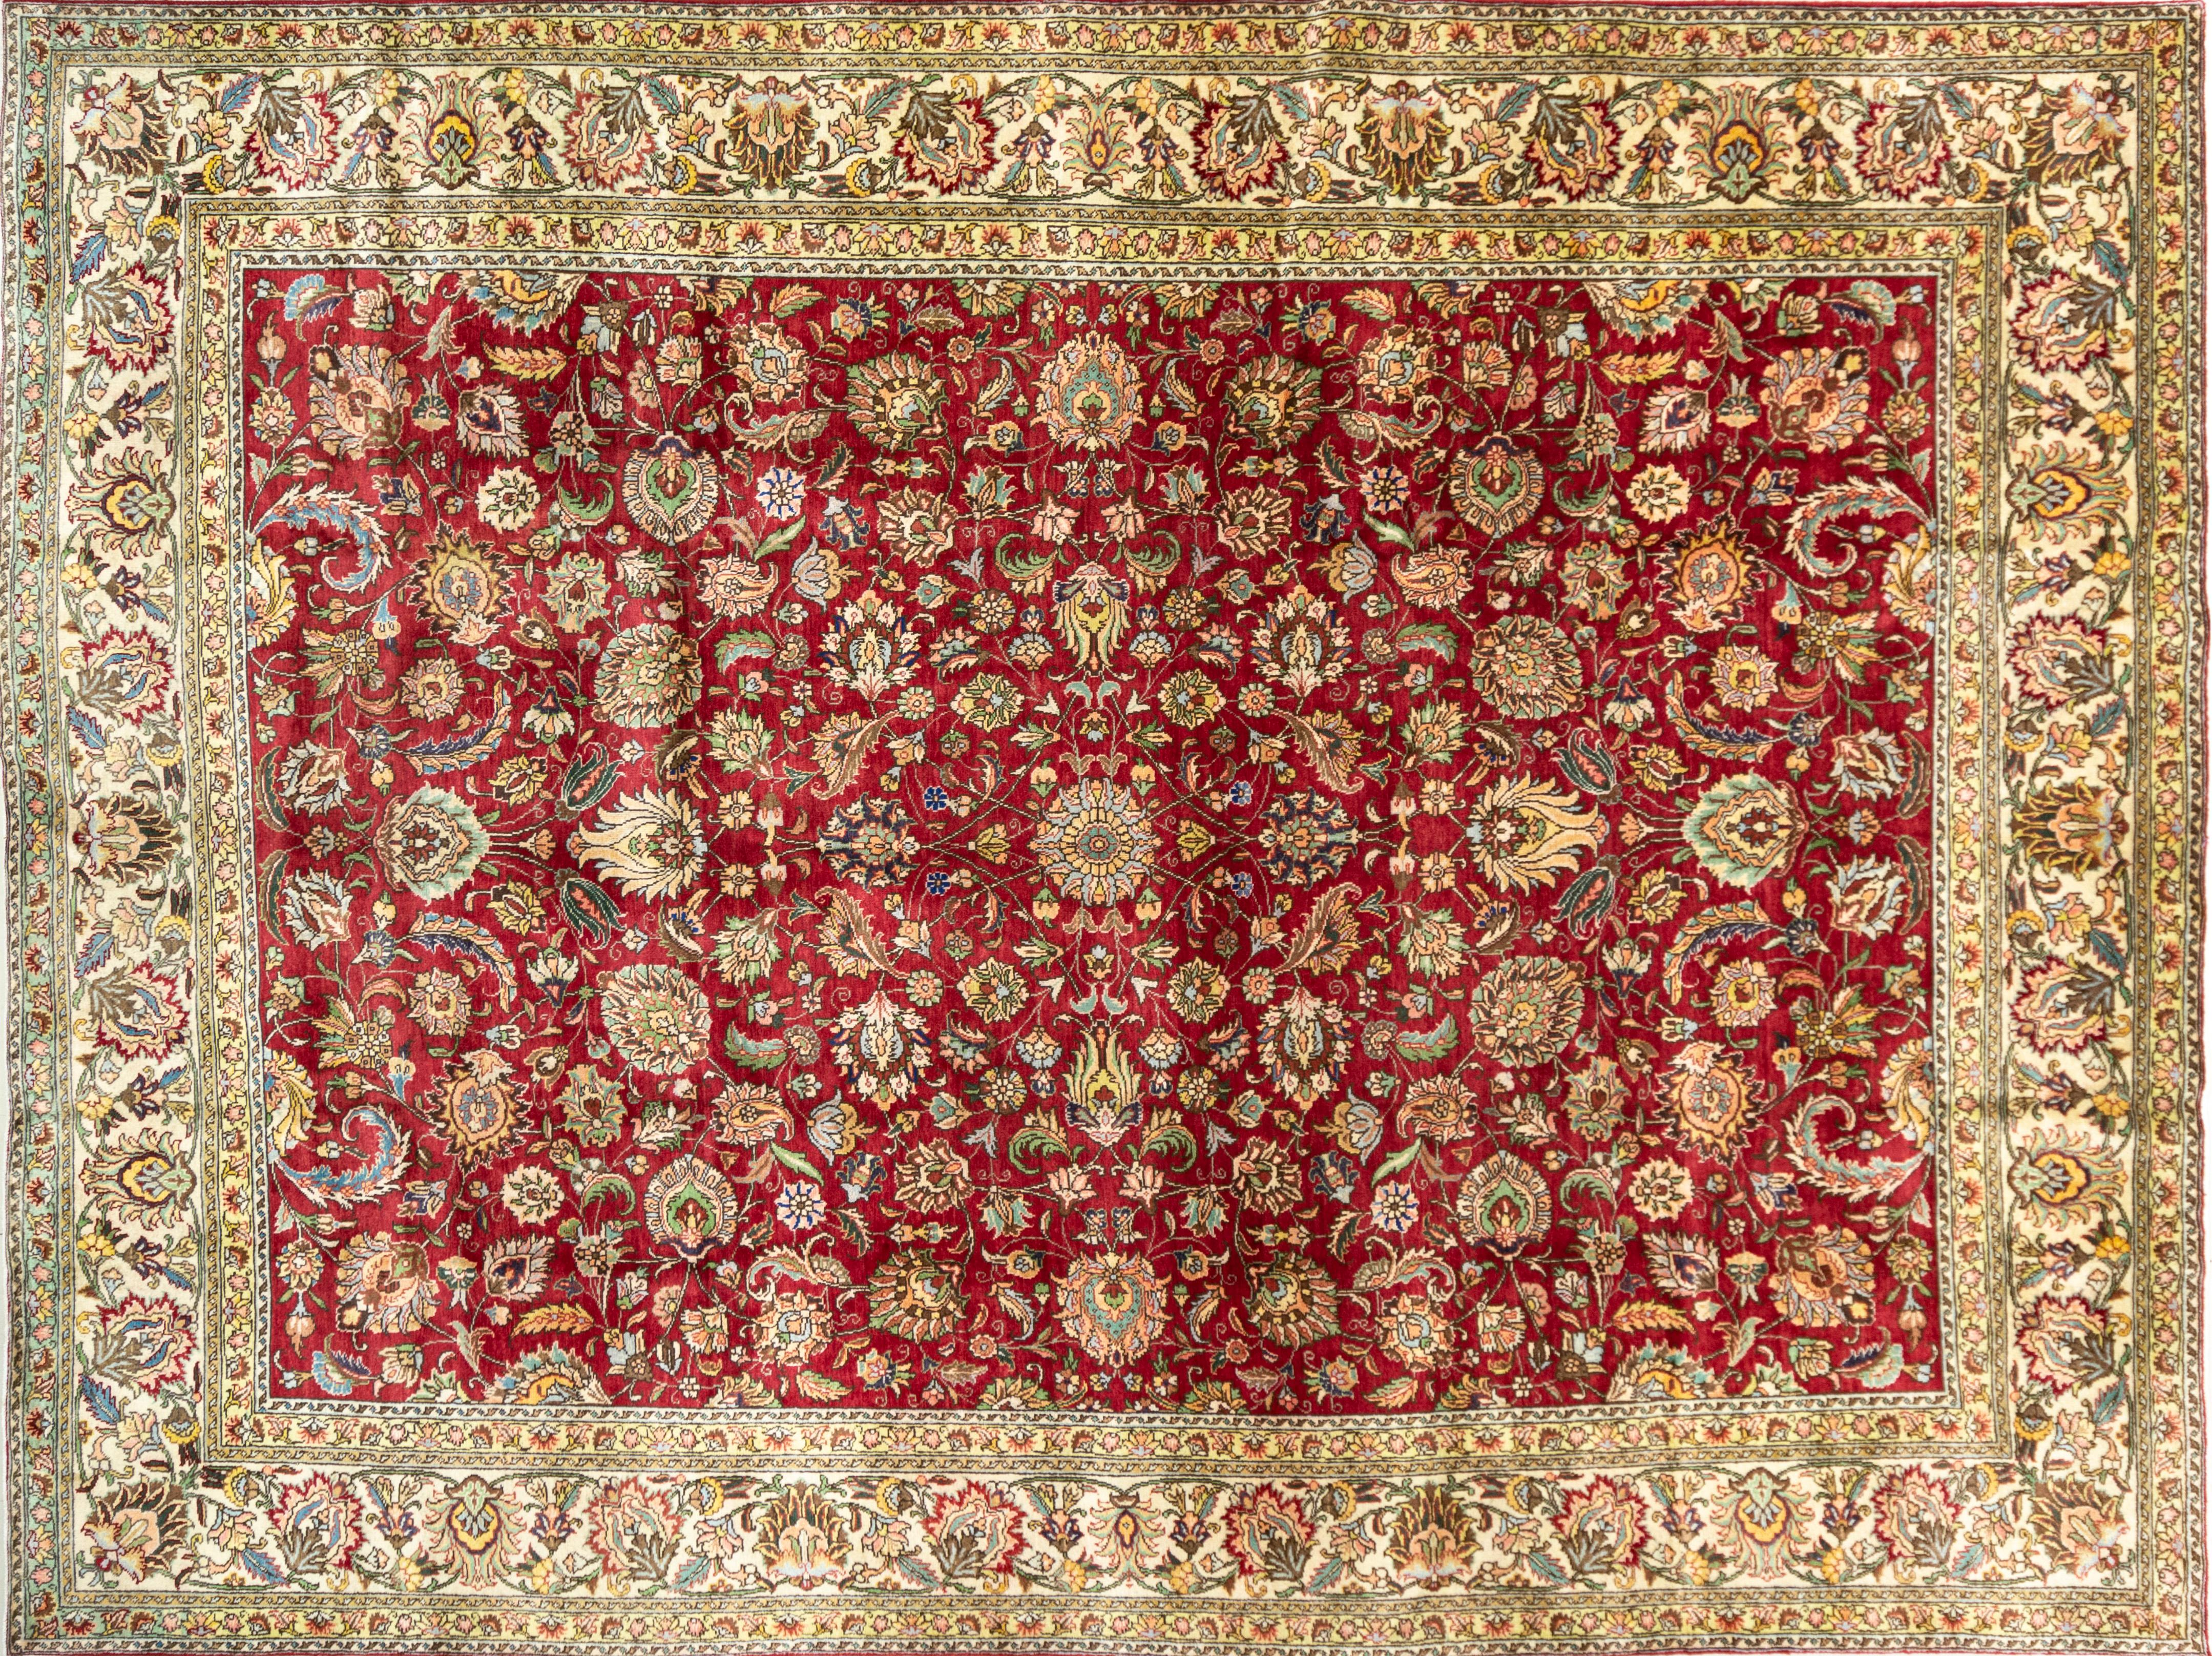 A Persian Hand Knotted Tabriz Carpet, 390 x 291